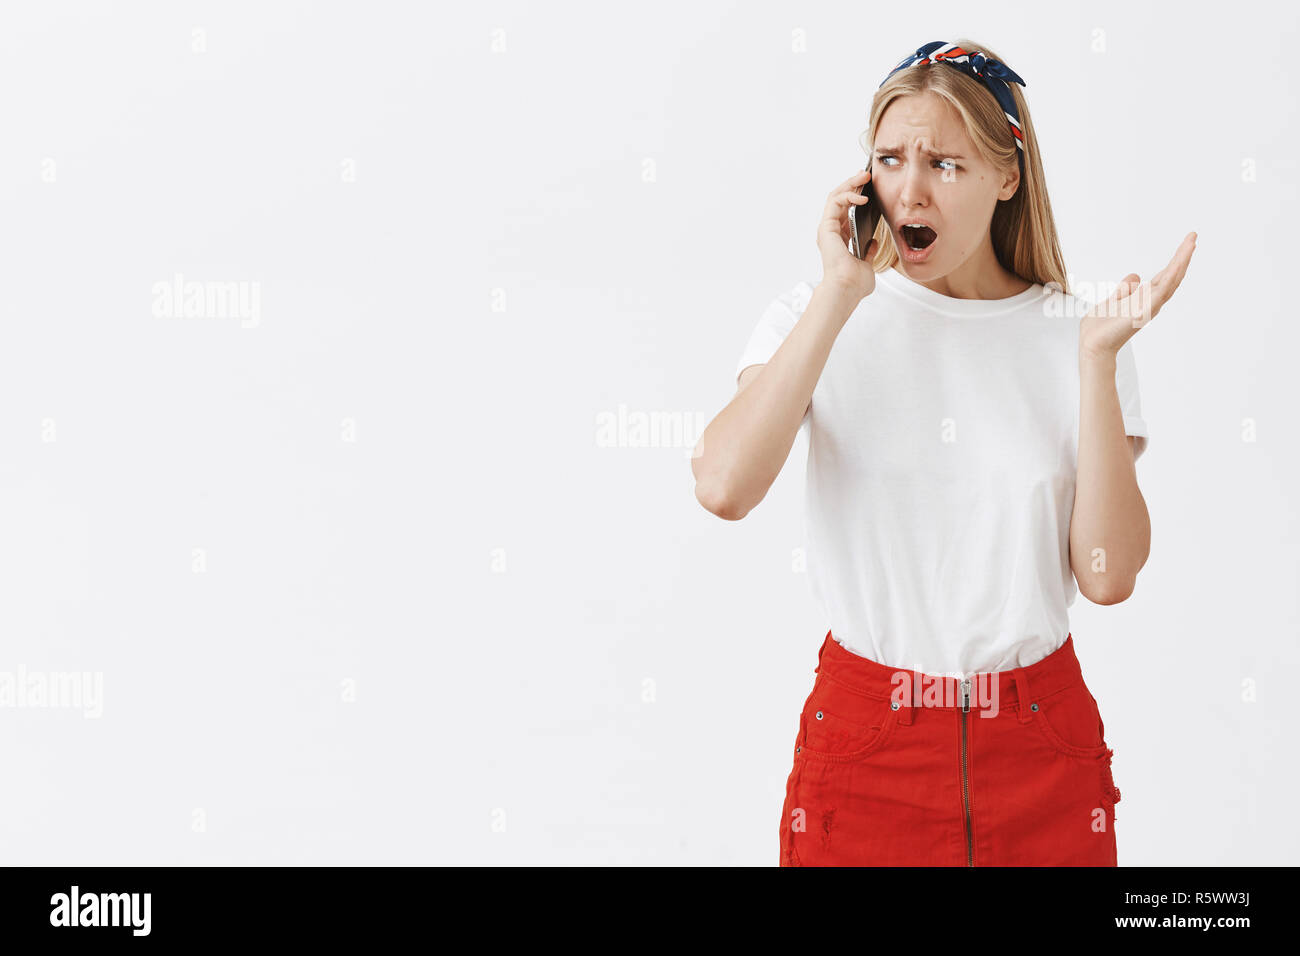 Studio shot of displeased moody girlfriend with blond hair frowning and compaining while talking on smartphone, gesturing and grimacing being displeas - Stock Image